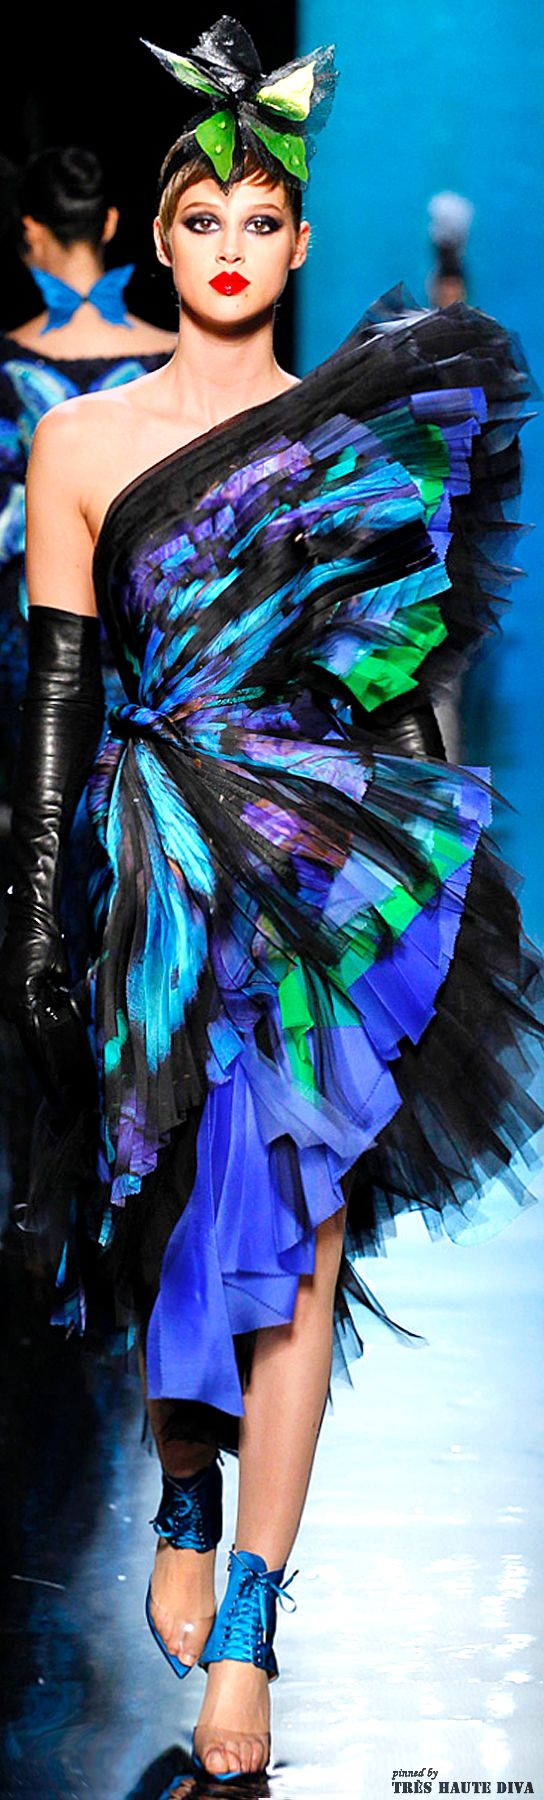 Jean Paul Gaultier Spring 2014 Couture. Butterfly, love it. His use of black and colour mixes so well together which makes this piece that much better. A truly talented man.